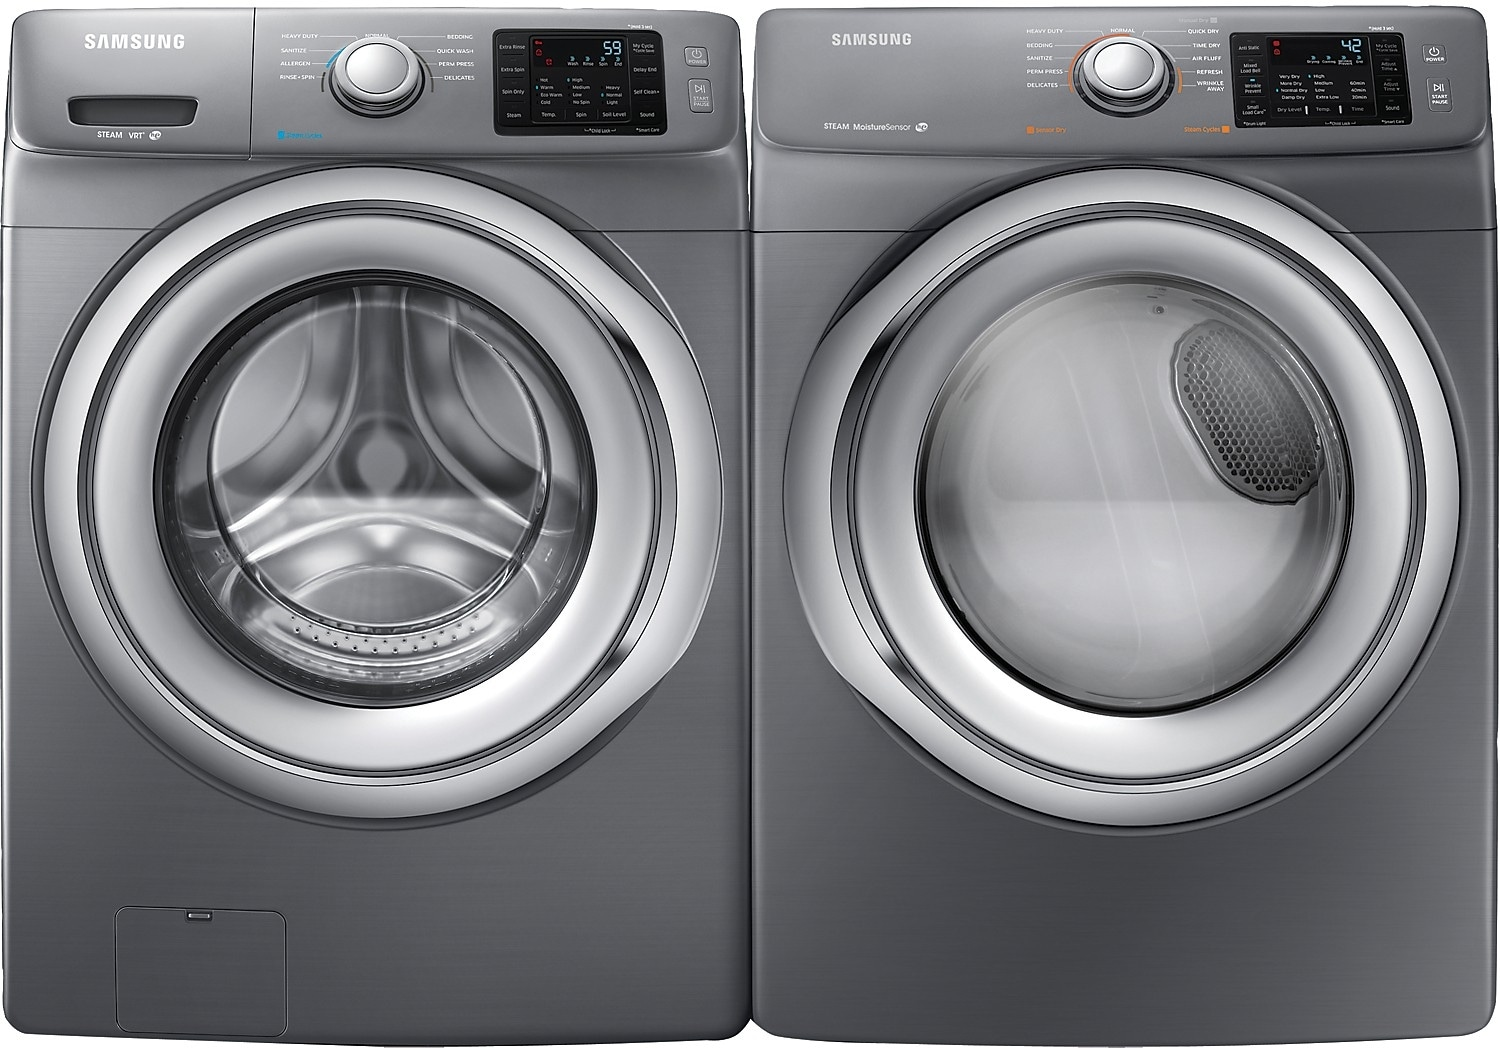 Samsung 4.8 Cu. Ft. Front-Load Washer and 7.5 Cu. Ft. Electric Dryer - Platinum